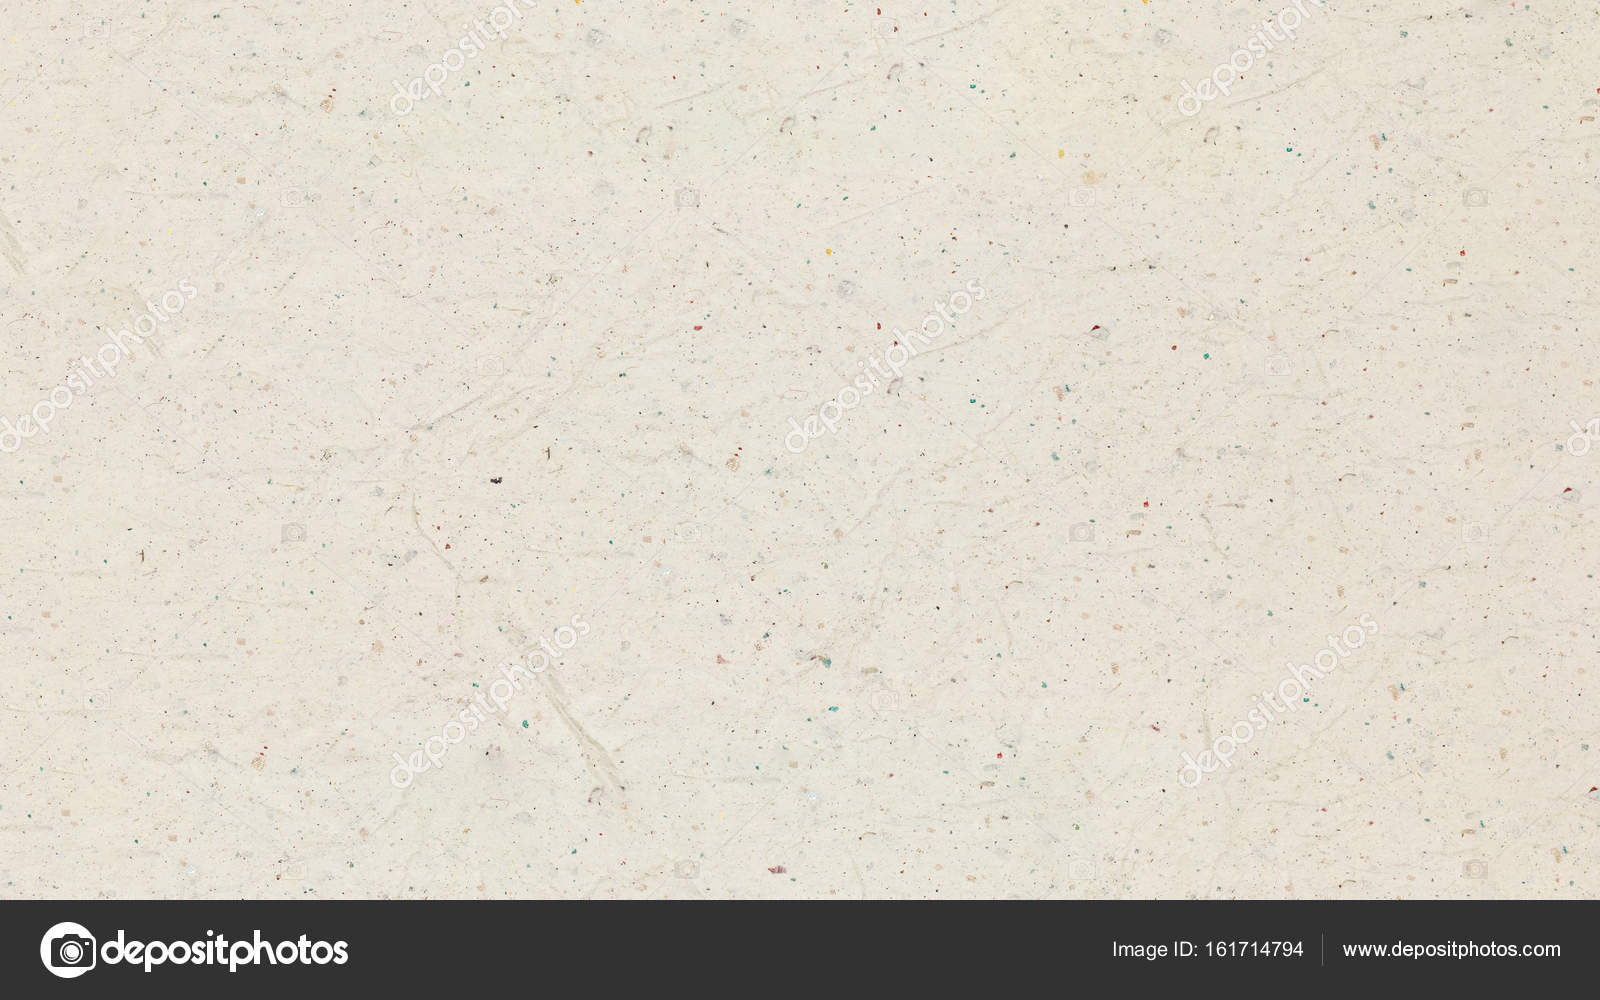 Recycled Crumpled Light Brown Paper Texture Background For Design Stock Photo